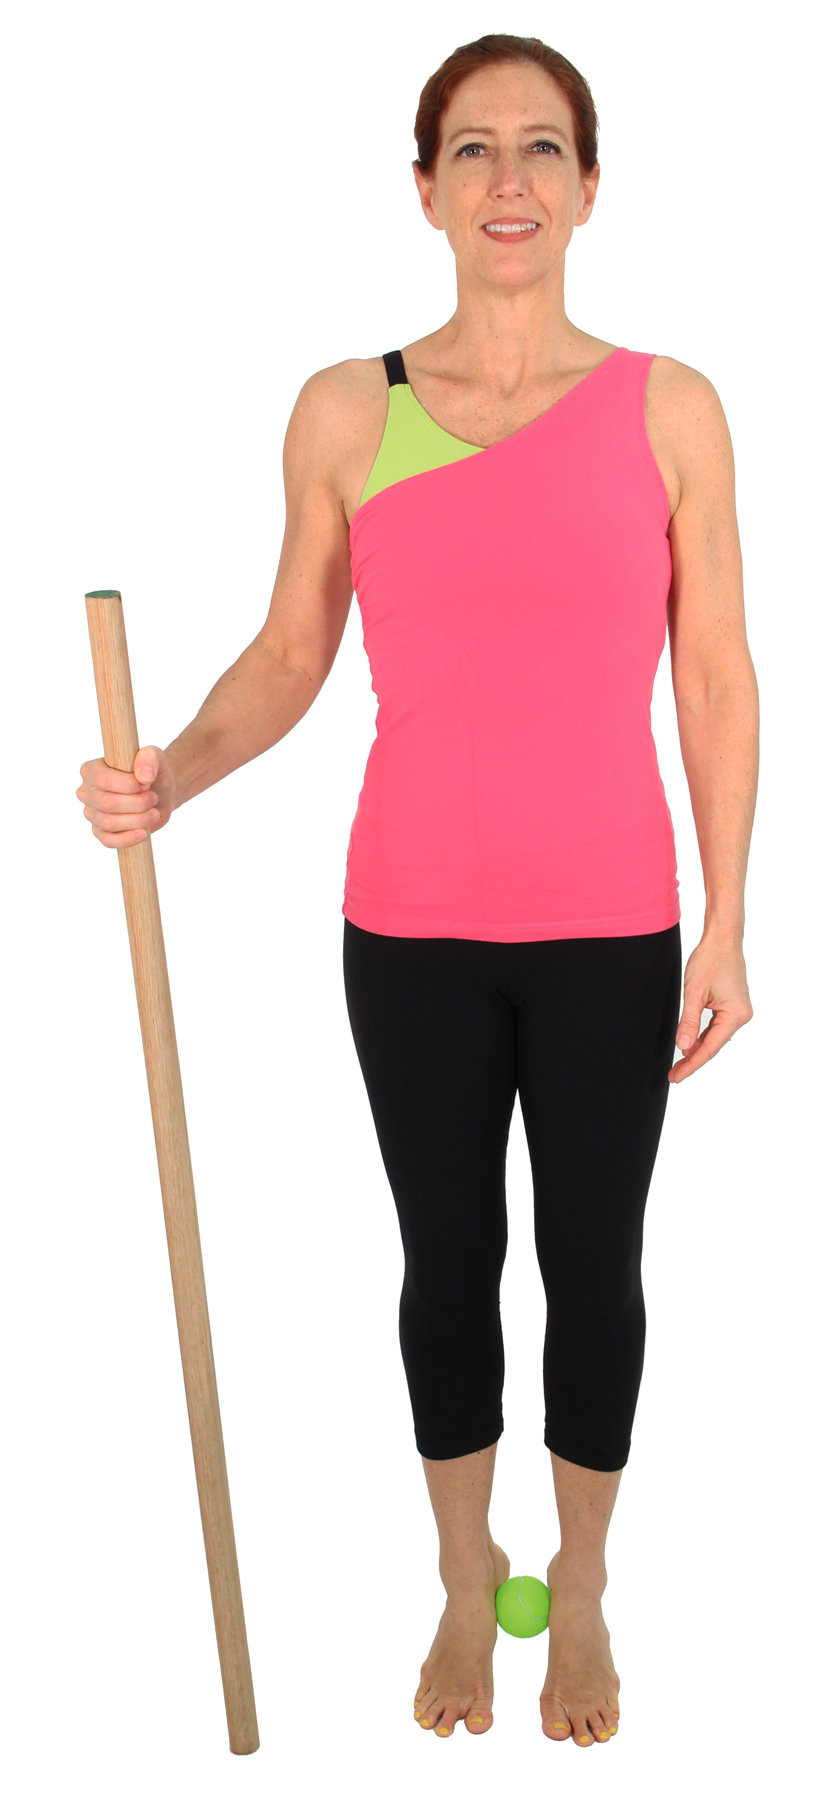 Exercises for Osteoporosis: Single Leg Standing Balance with Heel Raises